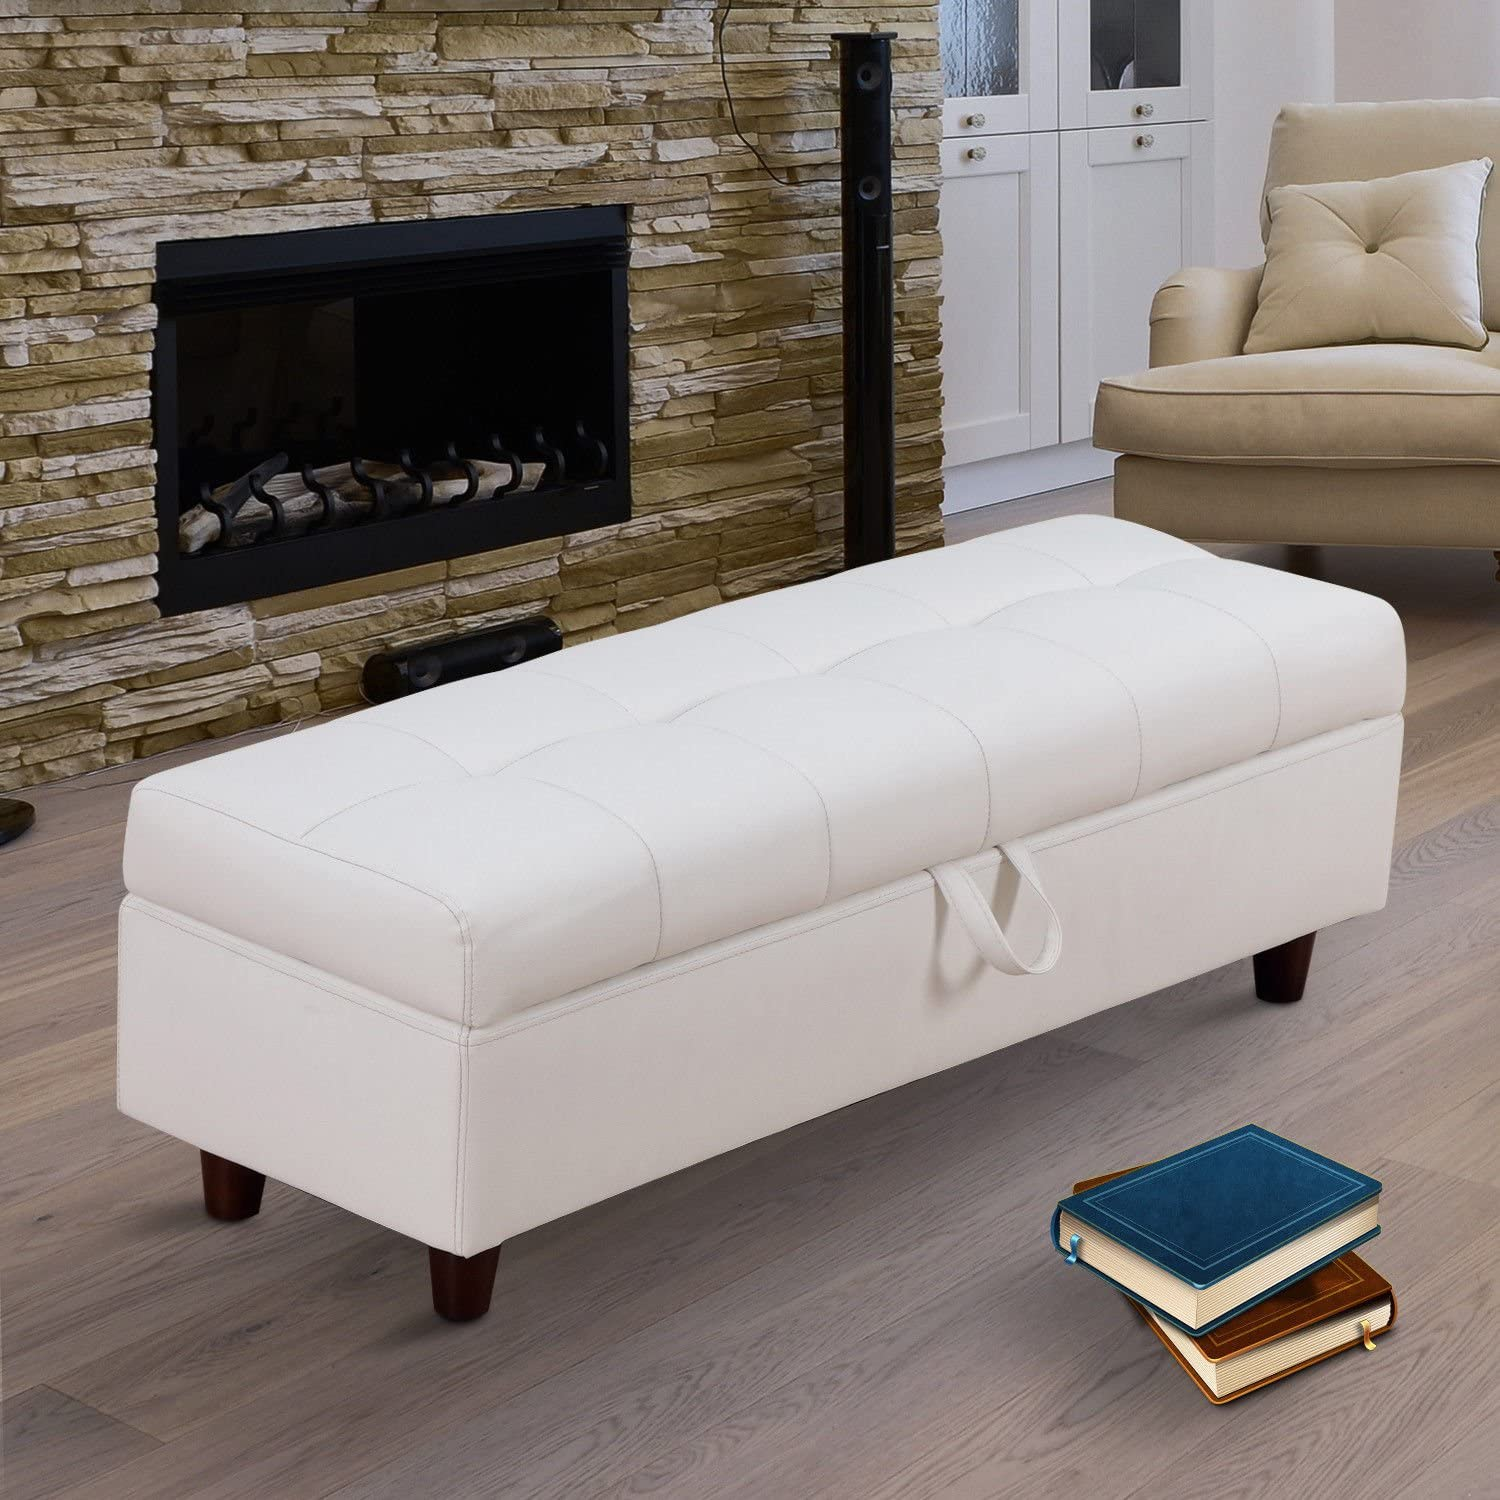 White HOMCOM 46 Storage Ottoman Stool Bench in PU Leather for Bed End or Hallway